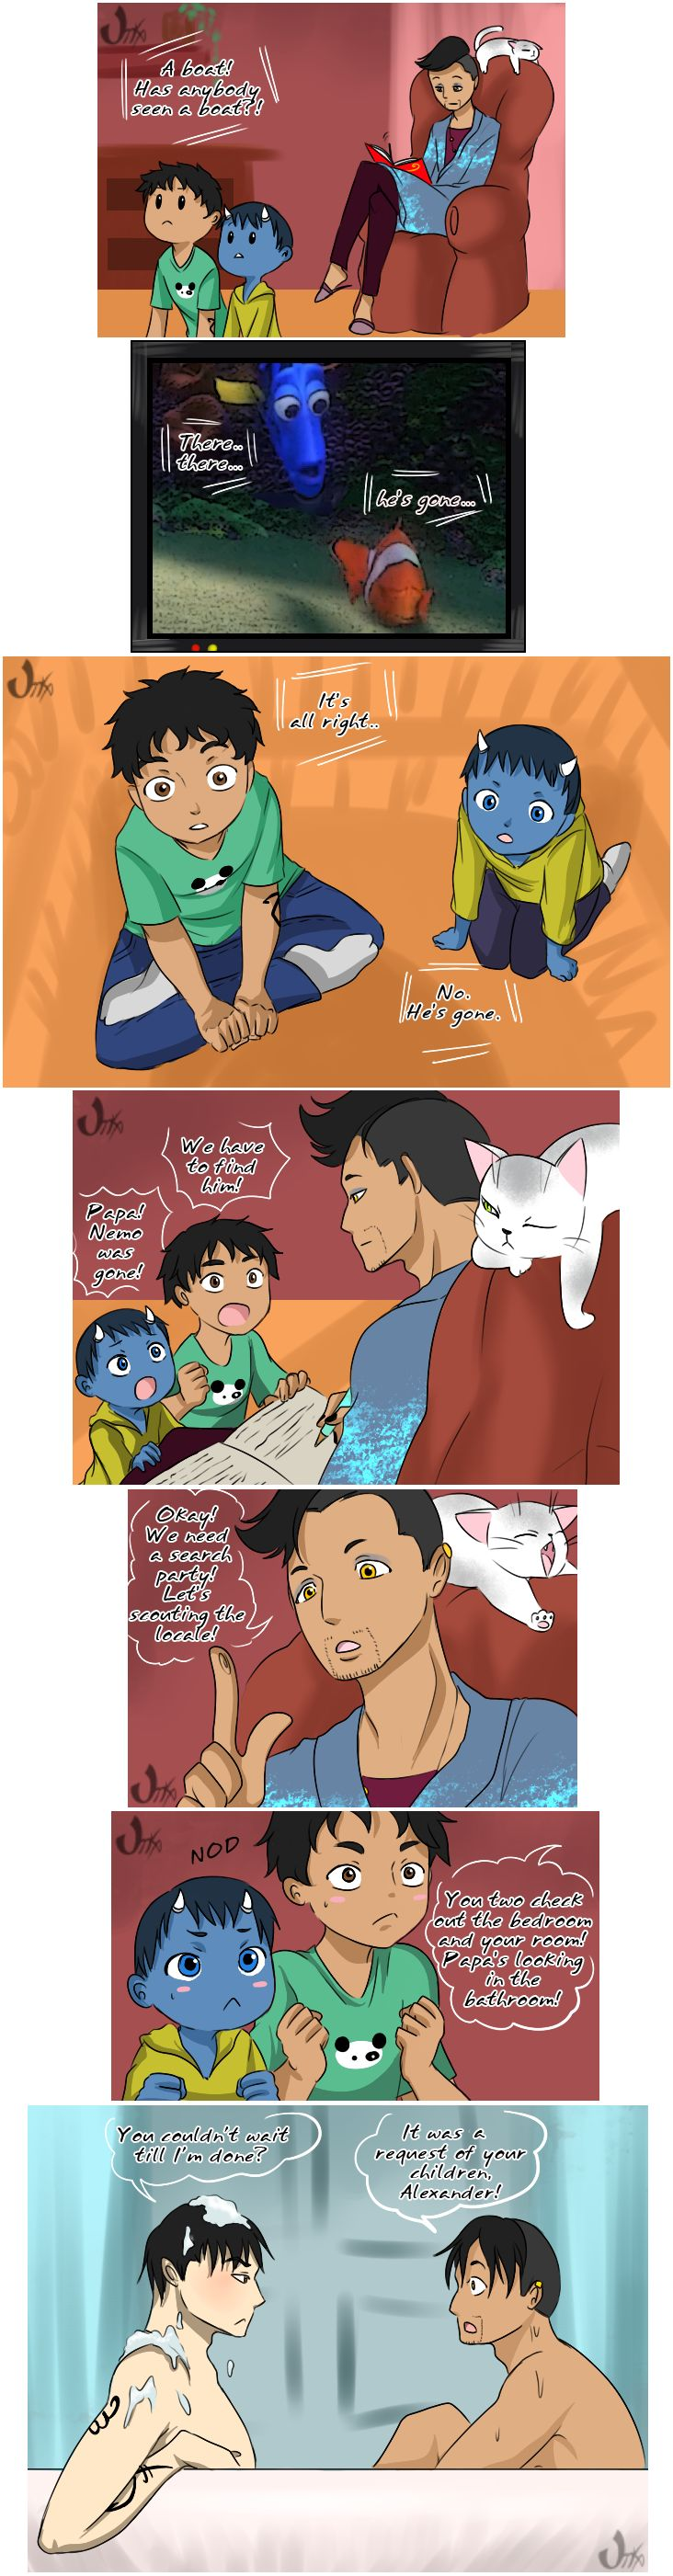 Request of your children ... Malec week 2017 theme Children ... From the hands off umkasandiary ... shadowhunters, alexander 'alec' lightwood, magnus bane, the mortal instruments, malec, max lightwood bane, chairman meow, blueberry, rafael lightwood bane, finding nemo